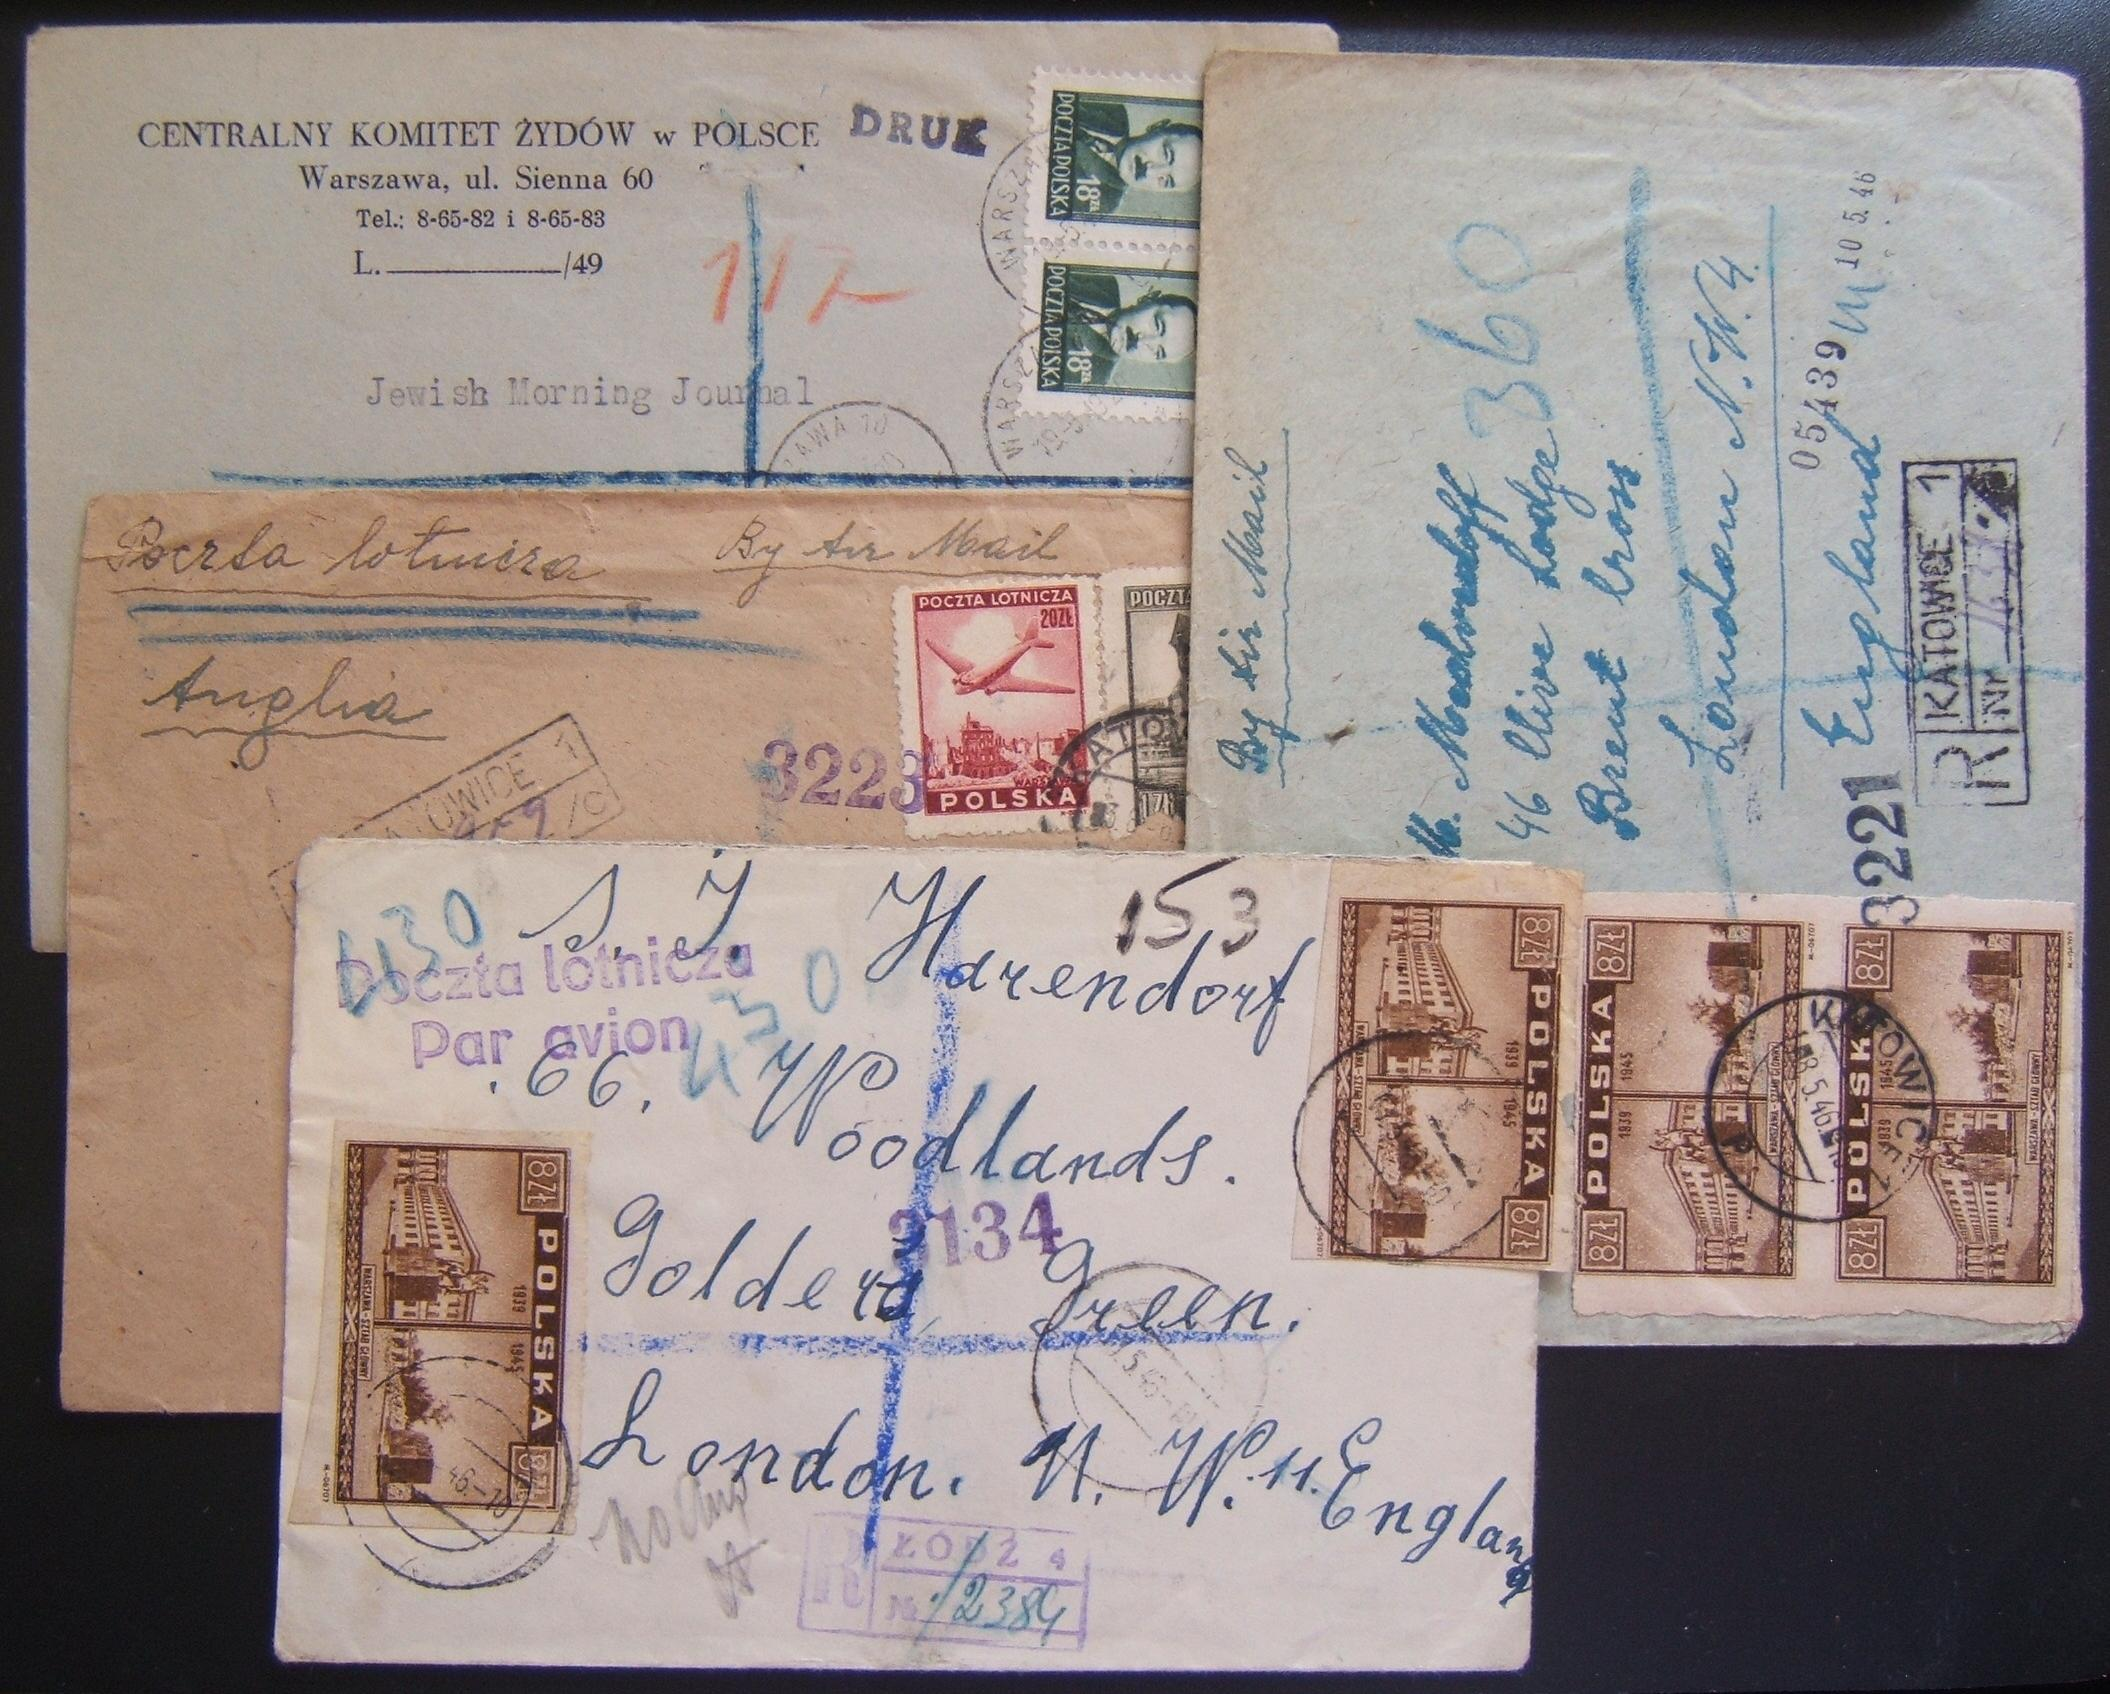 Post Holocaust Jewish mail: x4 registered commercial covers (including 1 printed matter cv) ex Poland (Warsaw, Katowice x2, Lodz), including 1 from the Central Committee of Jews in